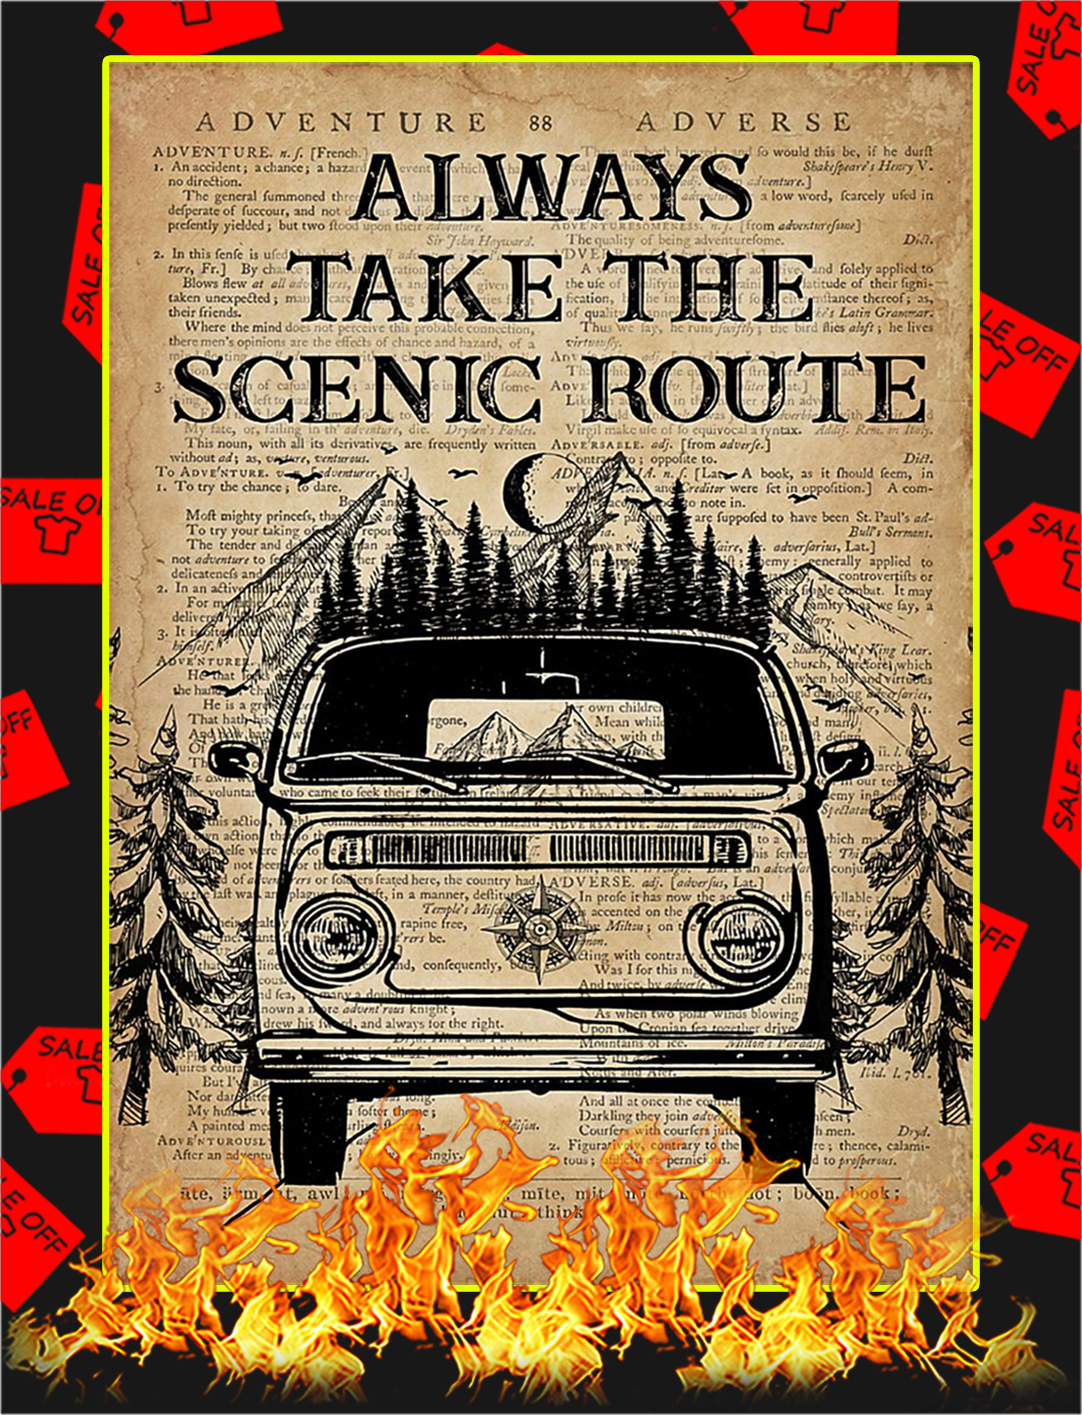 Always take the scenic route poster - A1